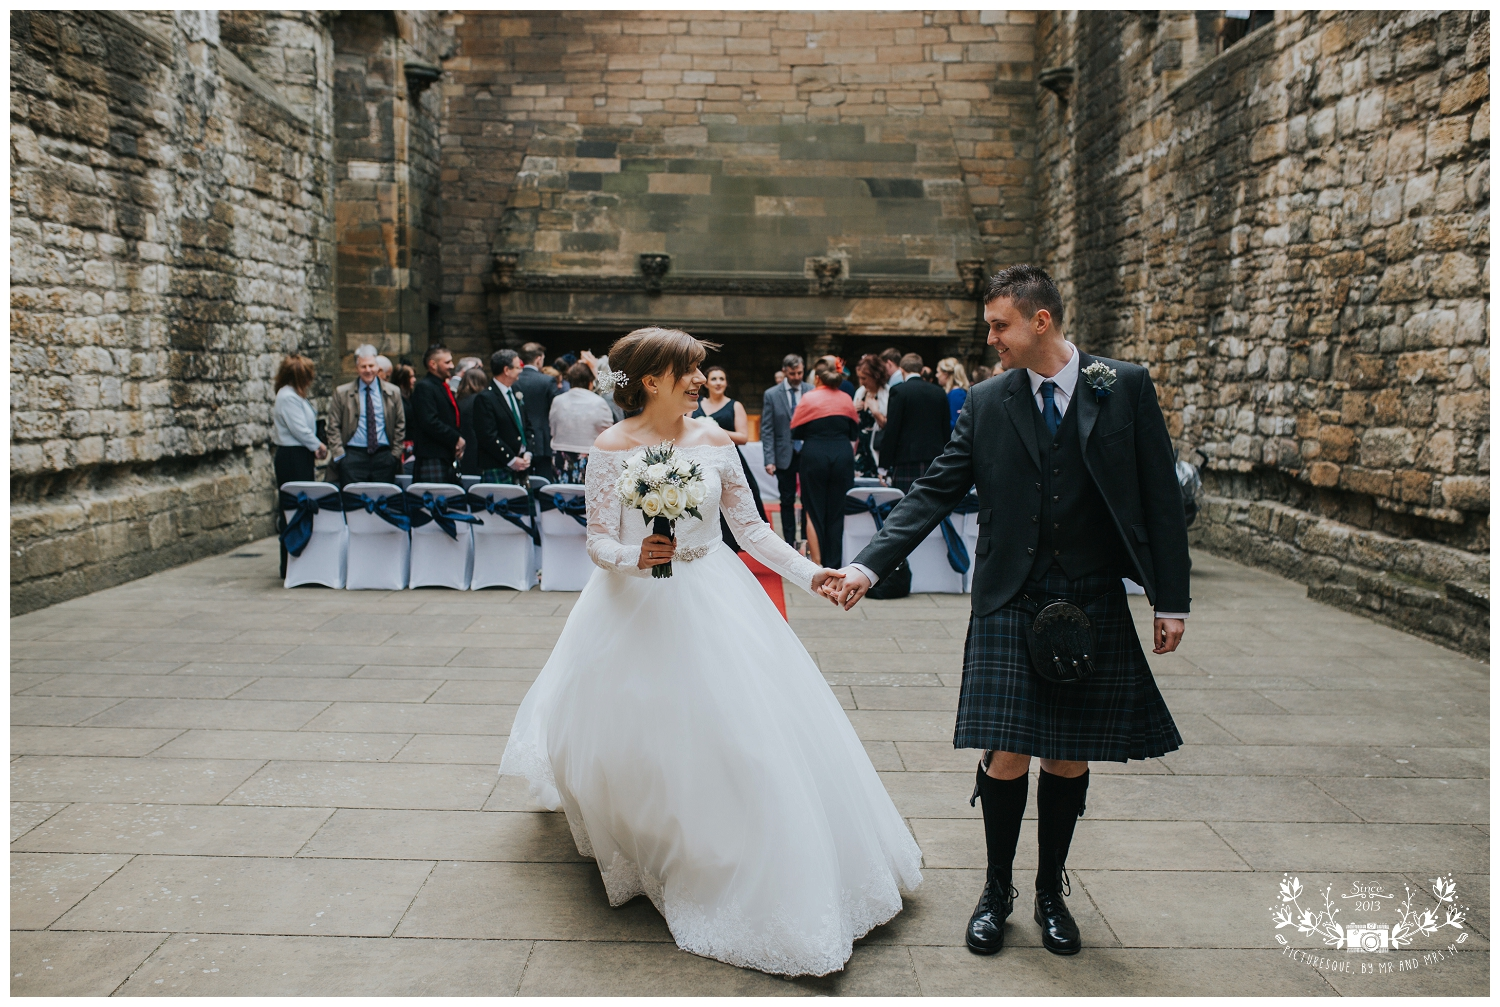 Linlithgow Palace and Beancross wedding_0028.jpg